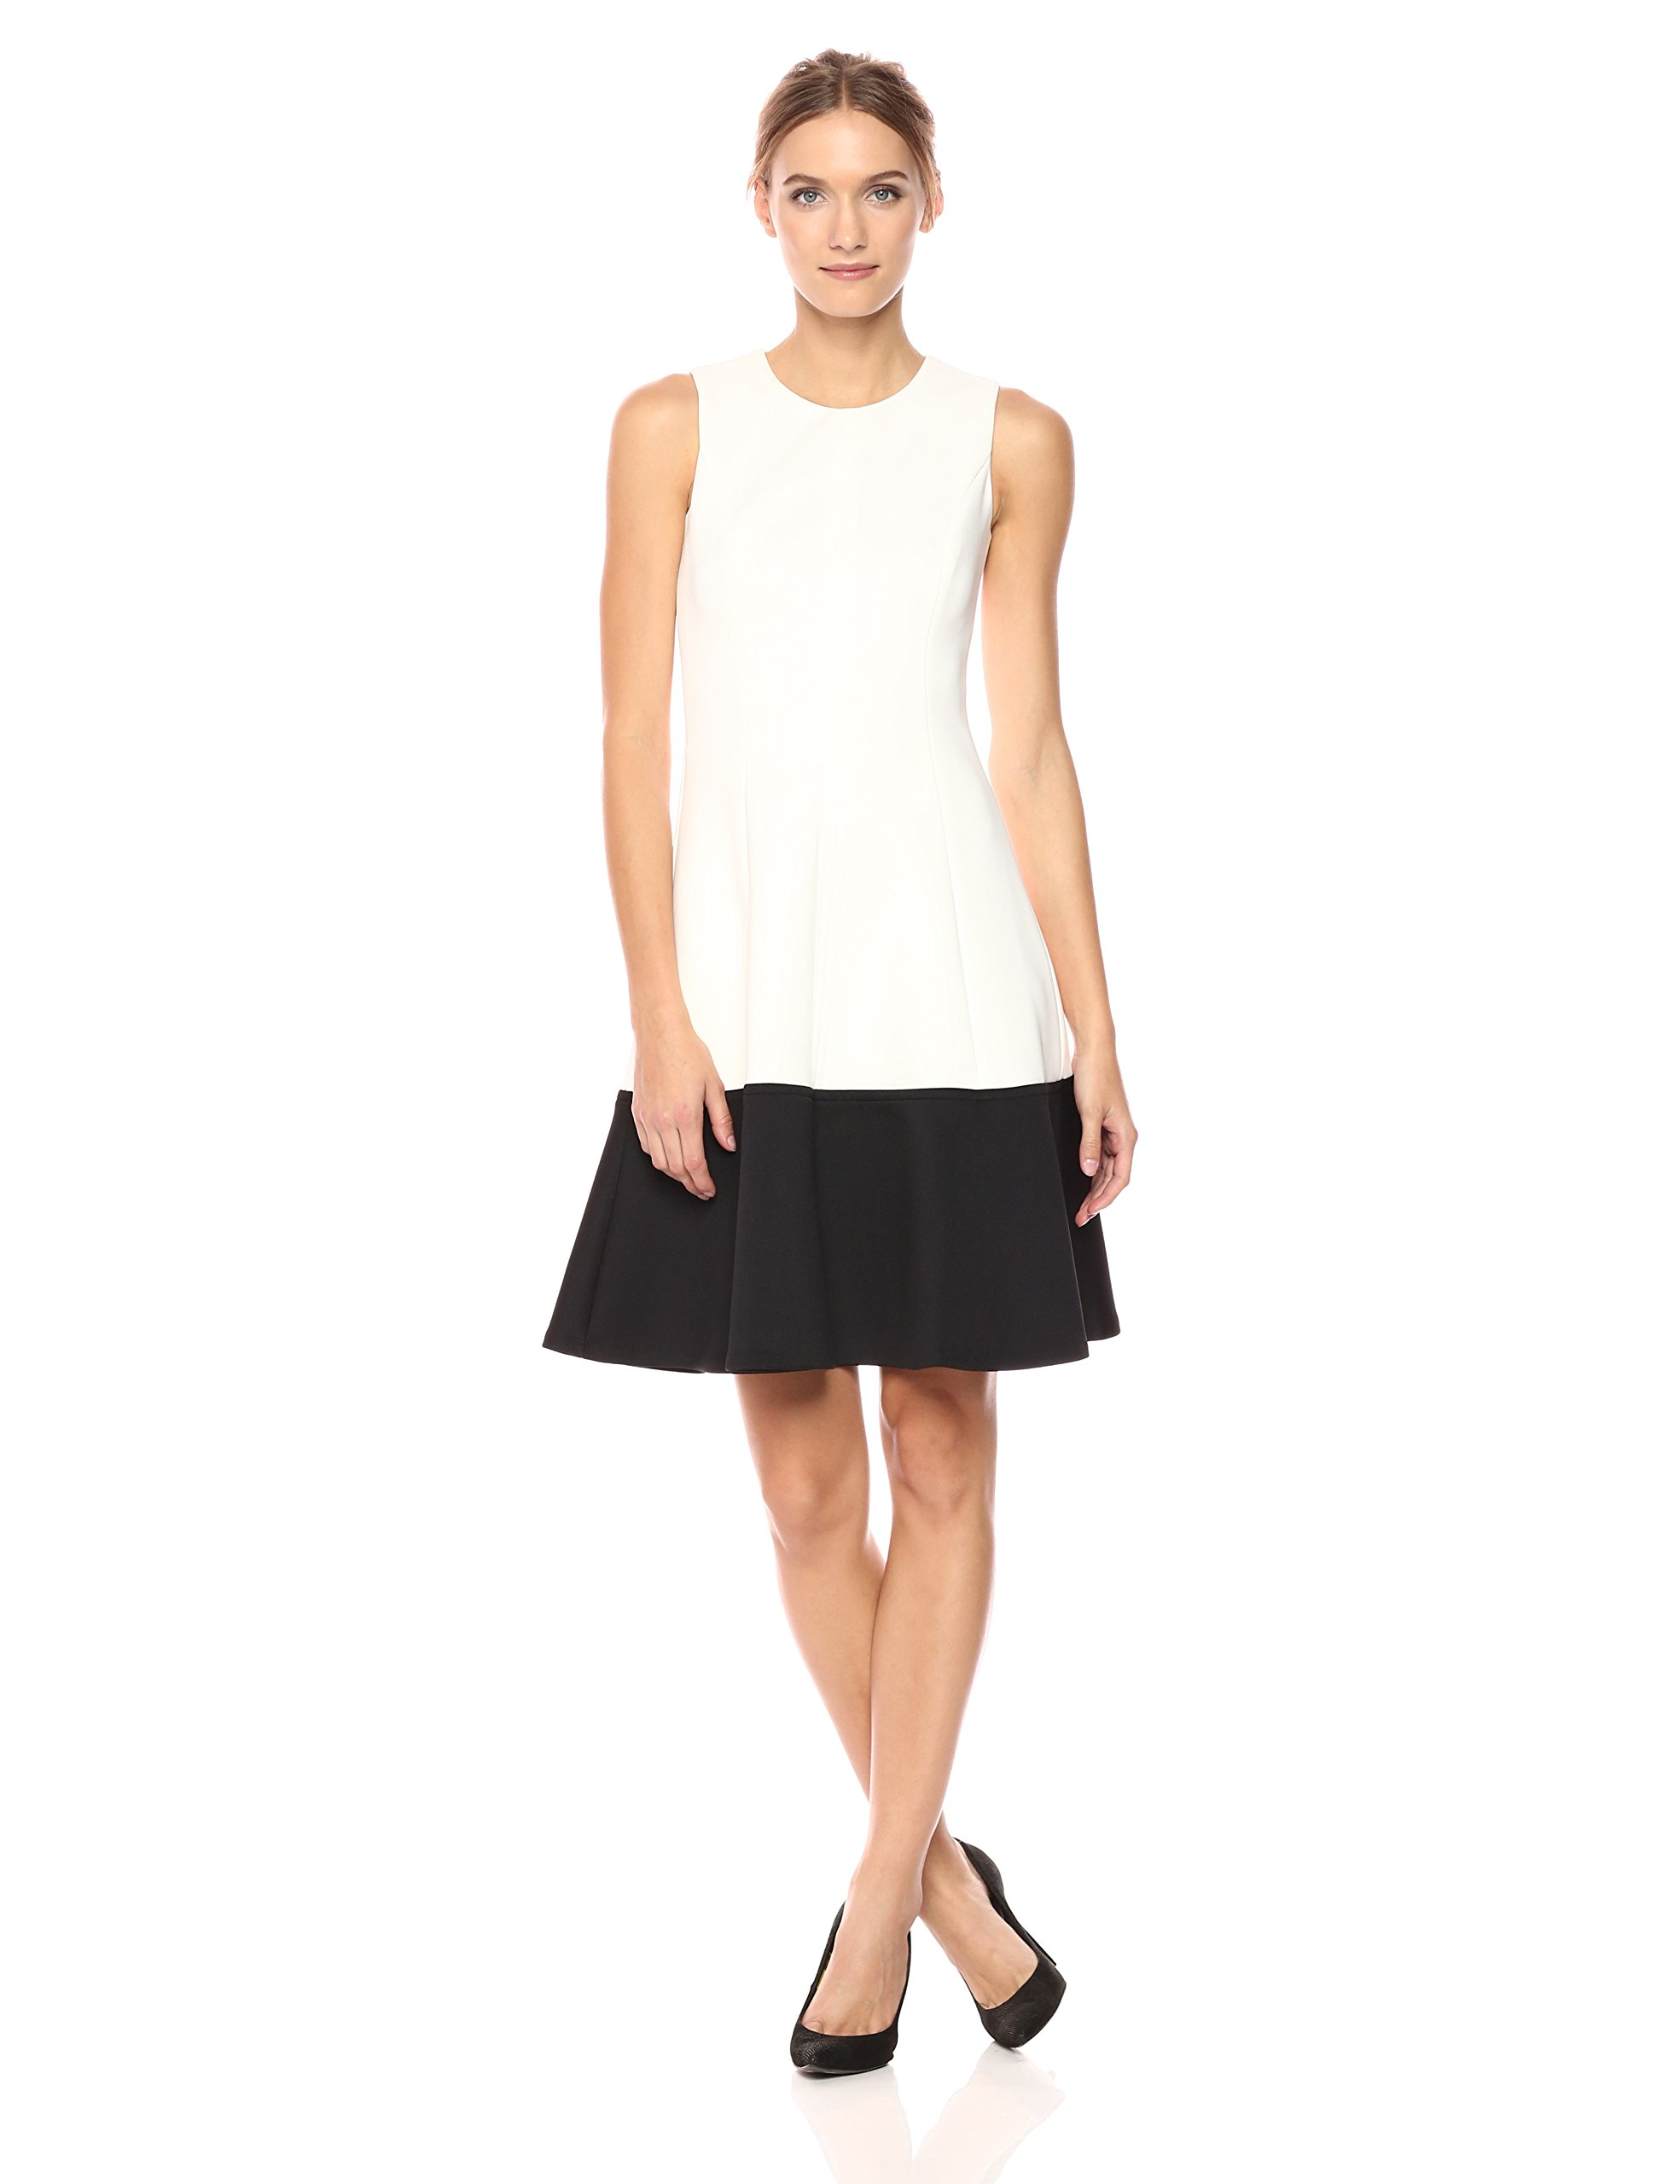 Calvin Klein Women's Color Block Fit and Flare Dress, Black/Cream, 4 by Calvin Klein (Image #1)